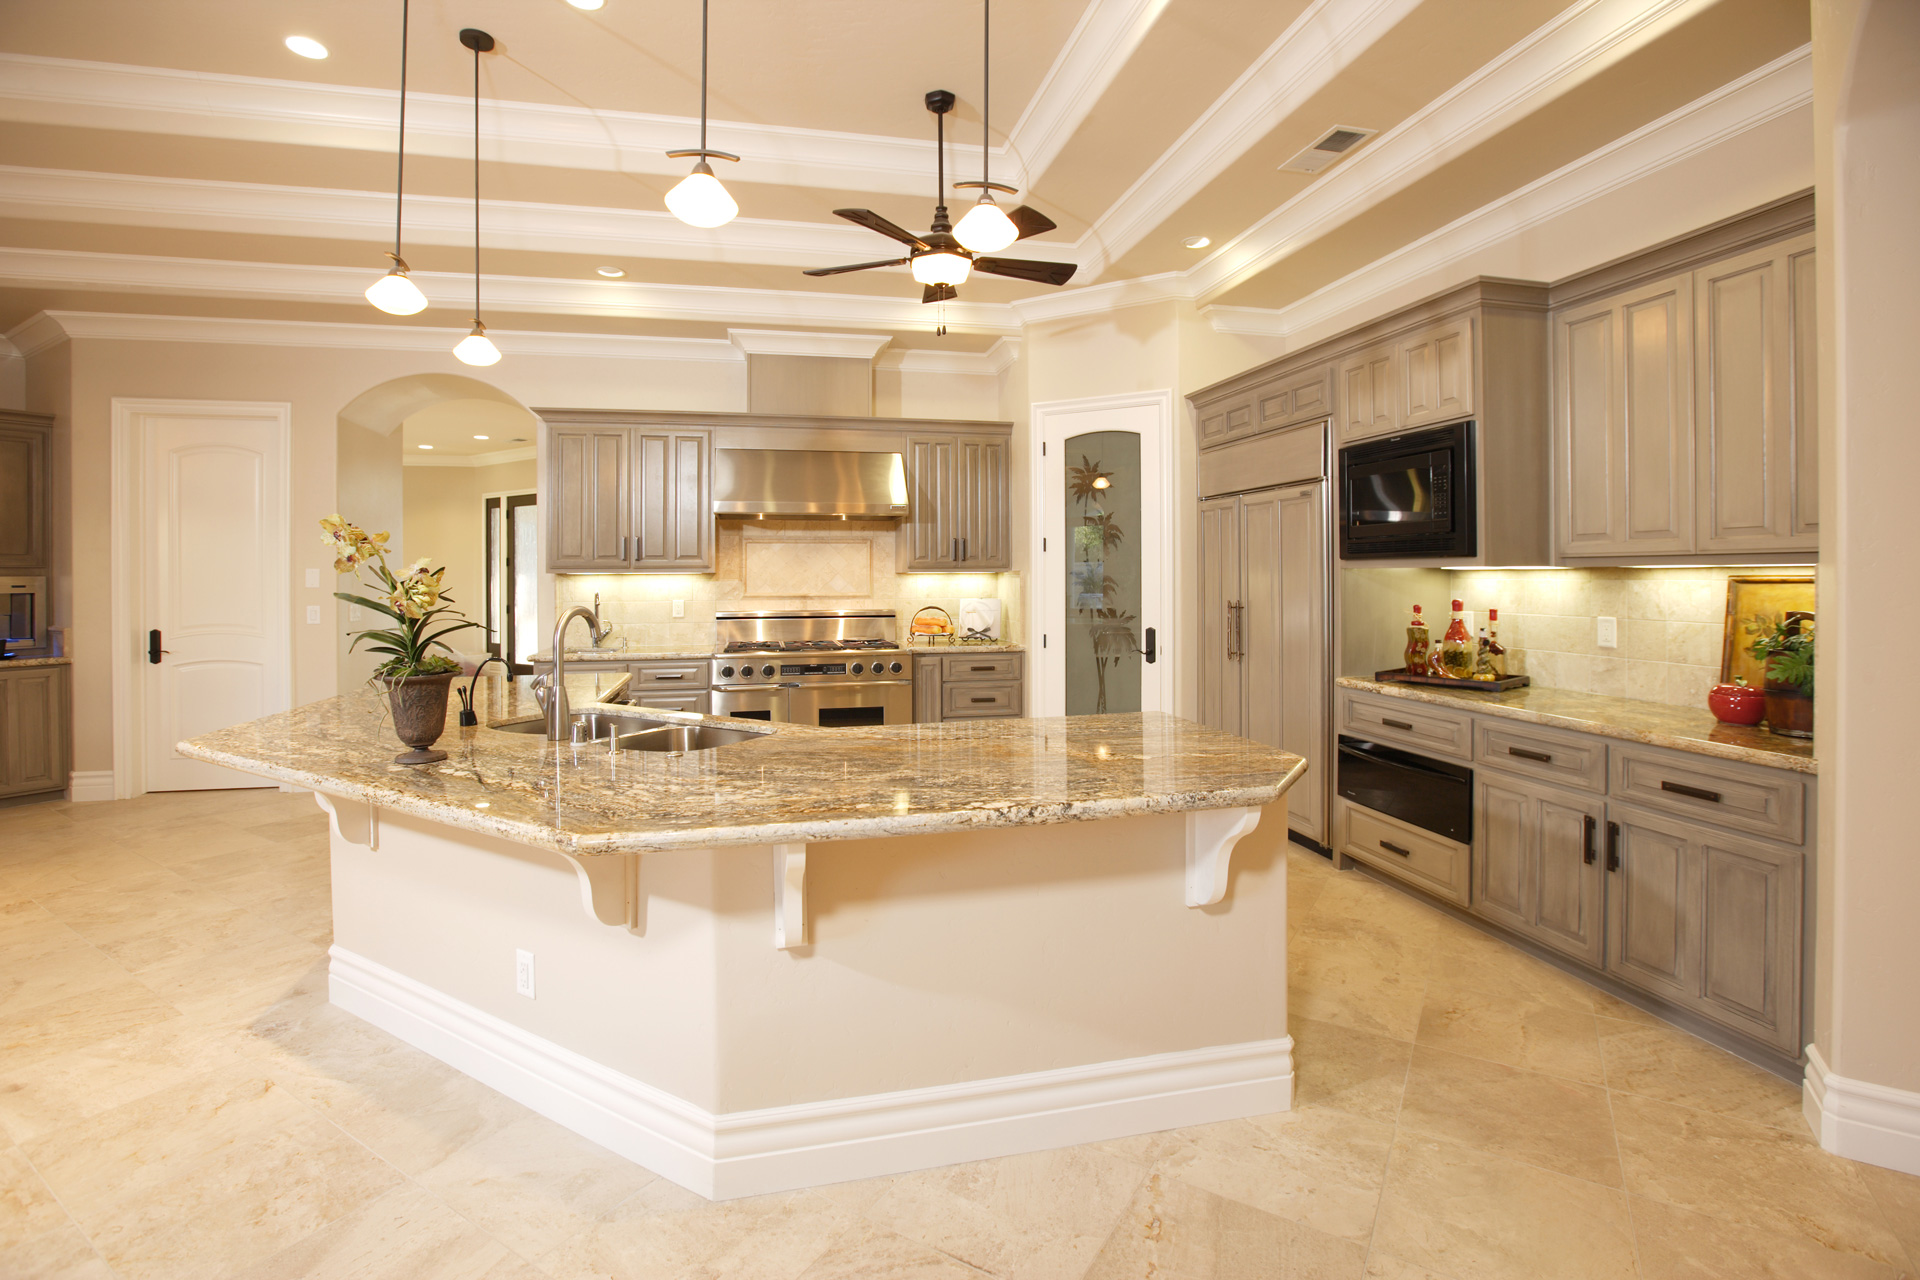 Kitchen Floor And Wall Trends 2018-CabinetCorp